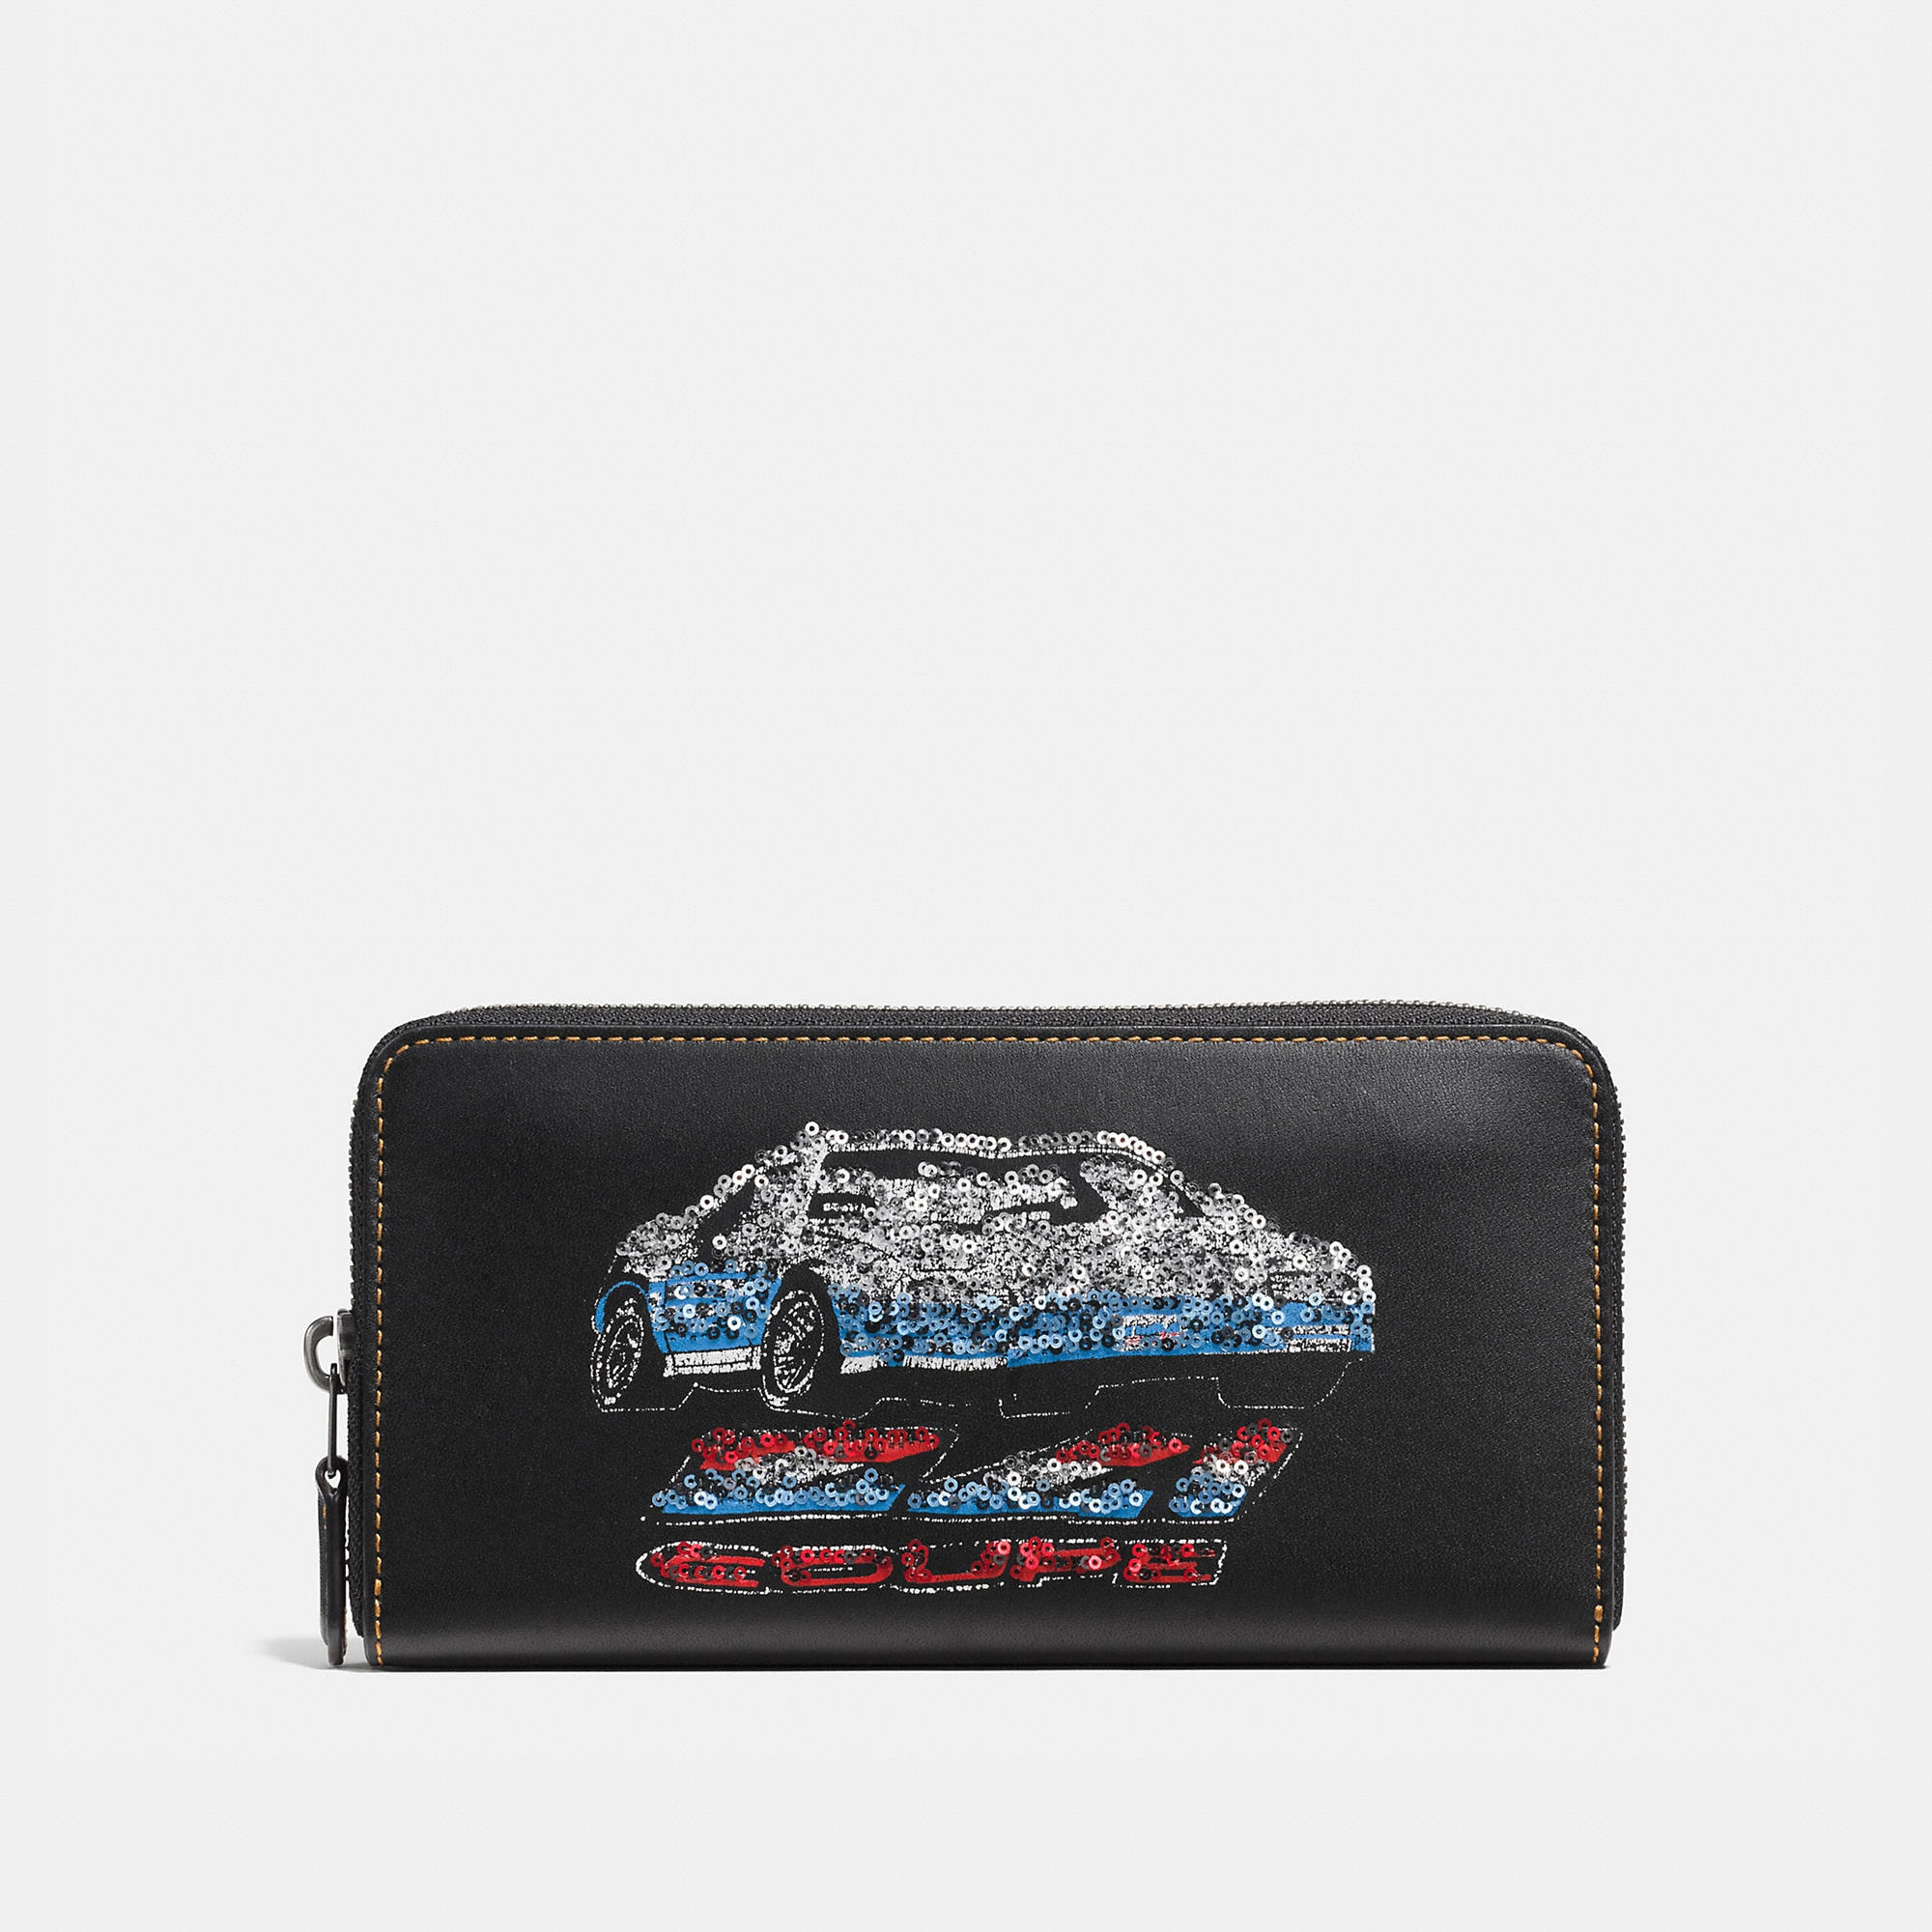 Coach Accordion Zip Wallet In Glovetanned Leather With Car Embellishment